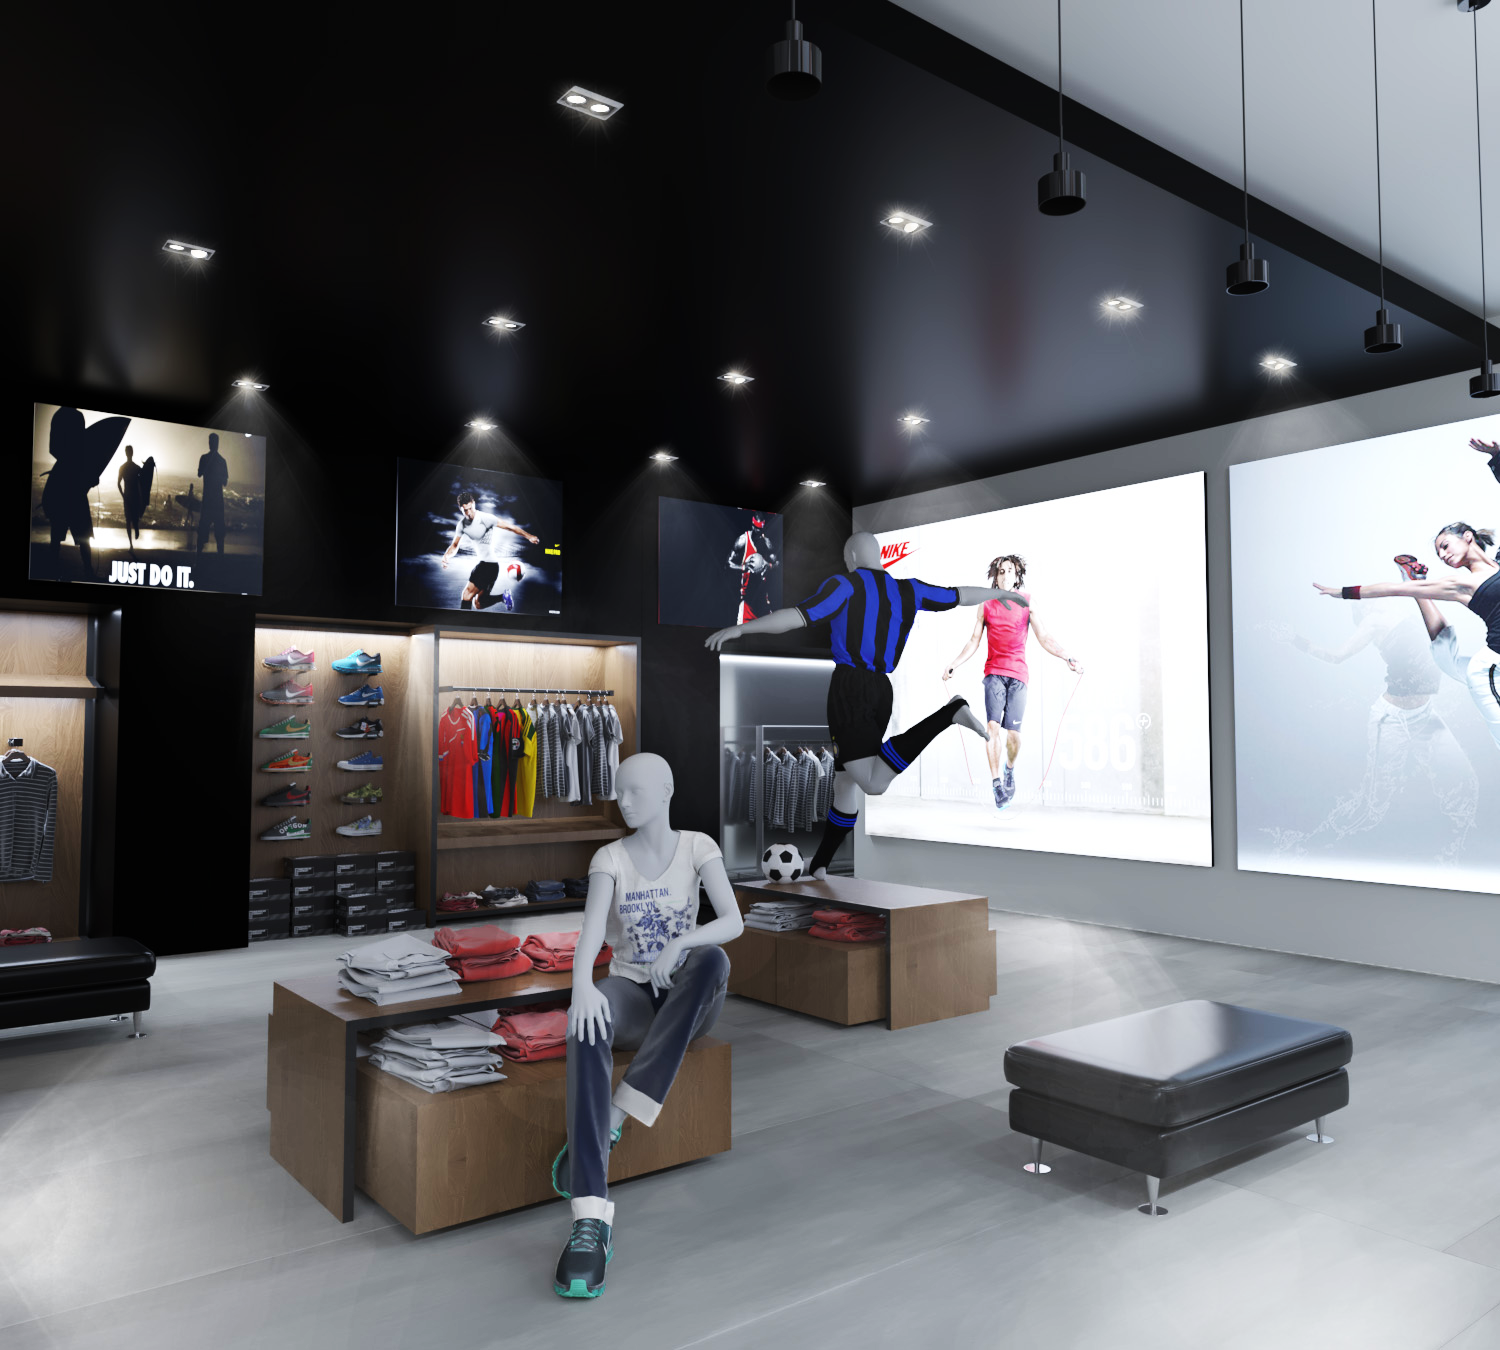 Design of a sporting goods store